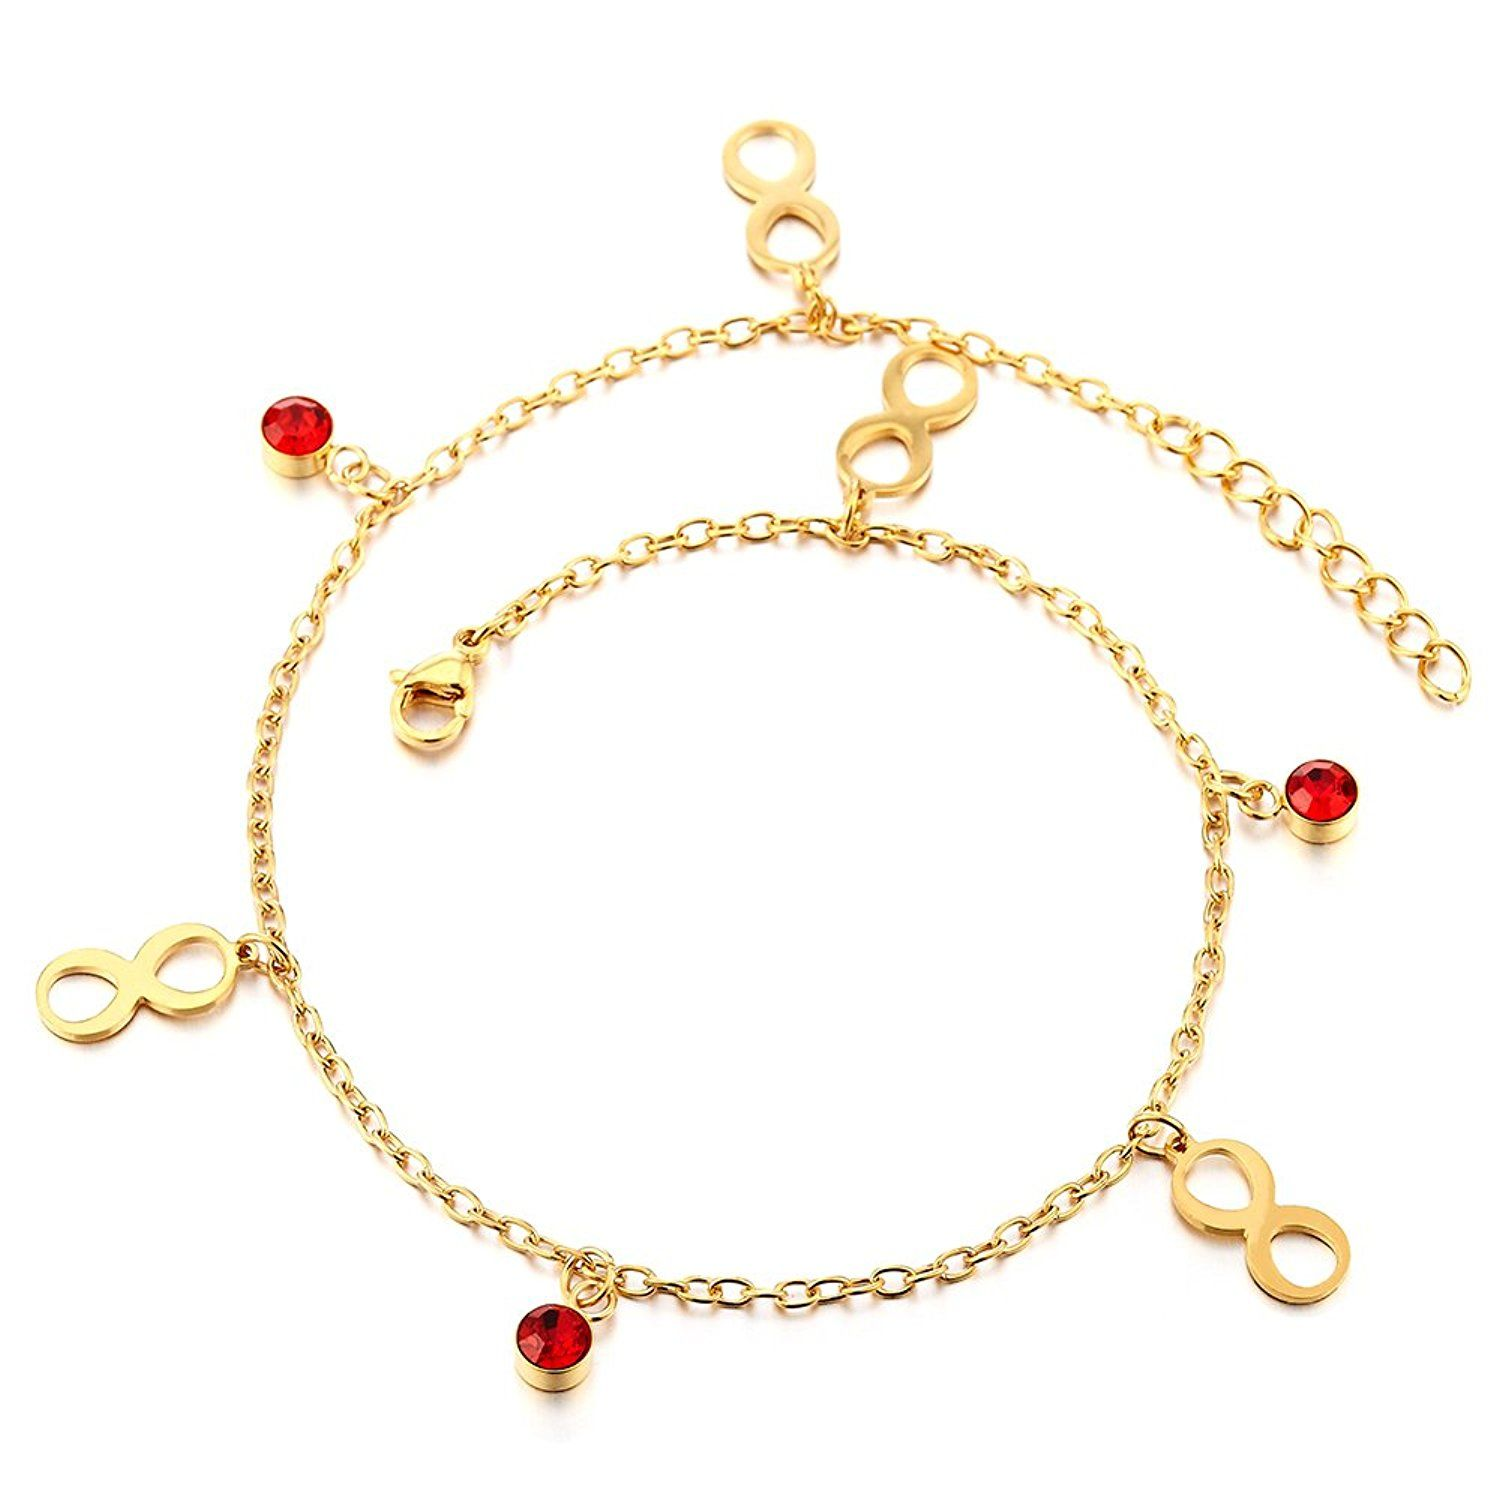 moon s yellow bracelet women white and with meira diamond whitegold jewelry ankle lyst anklet gold bracelets charms t star